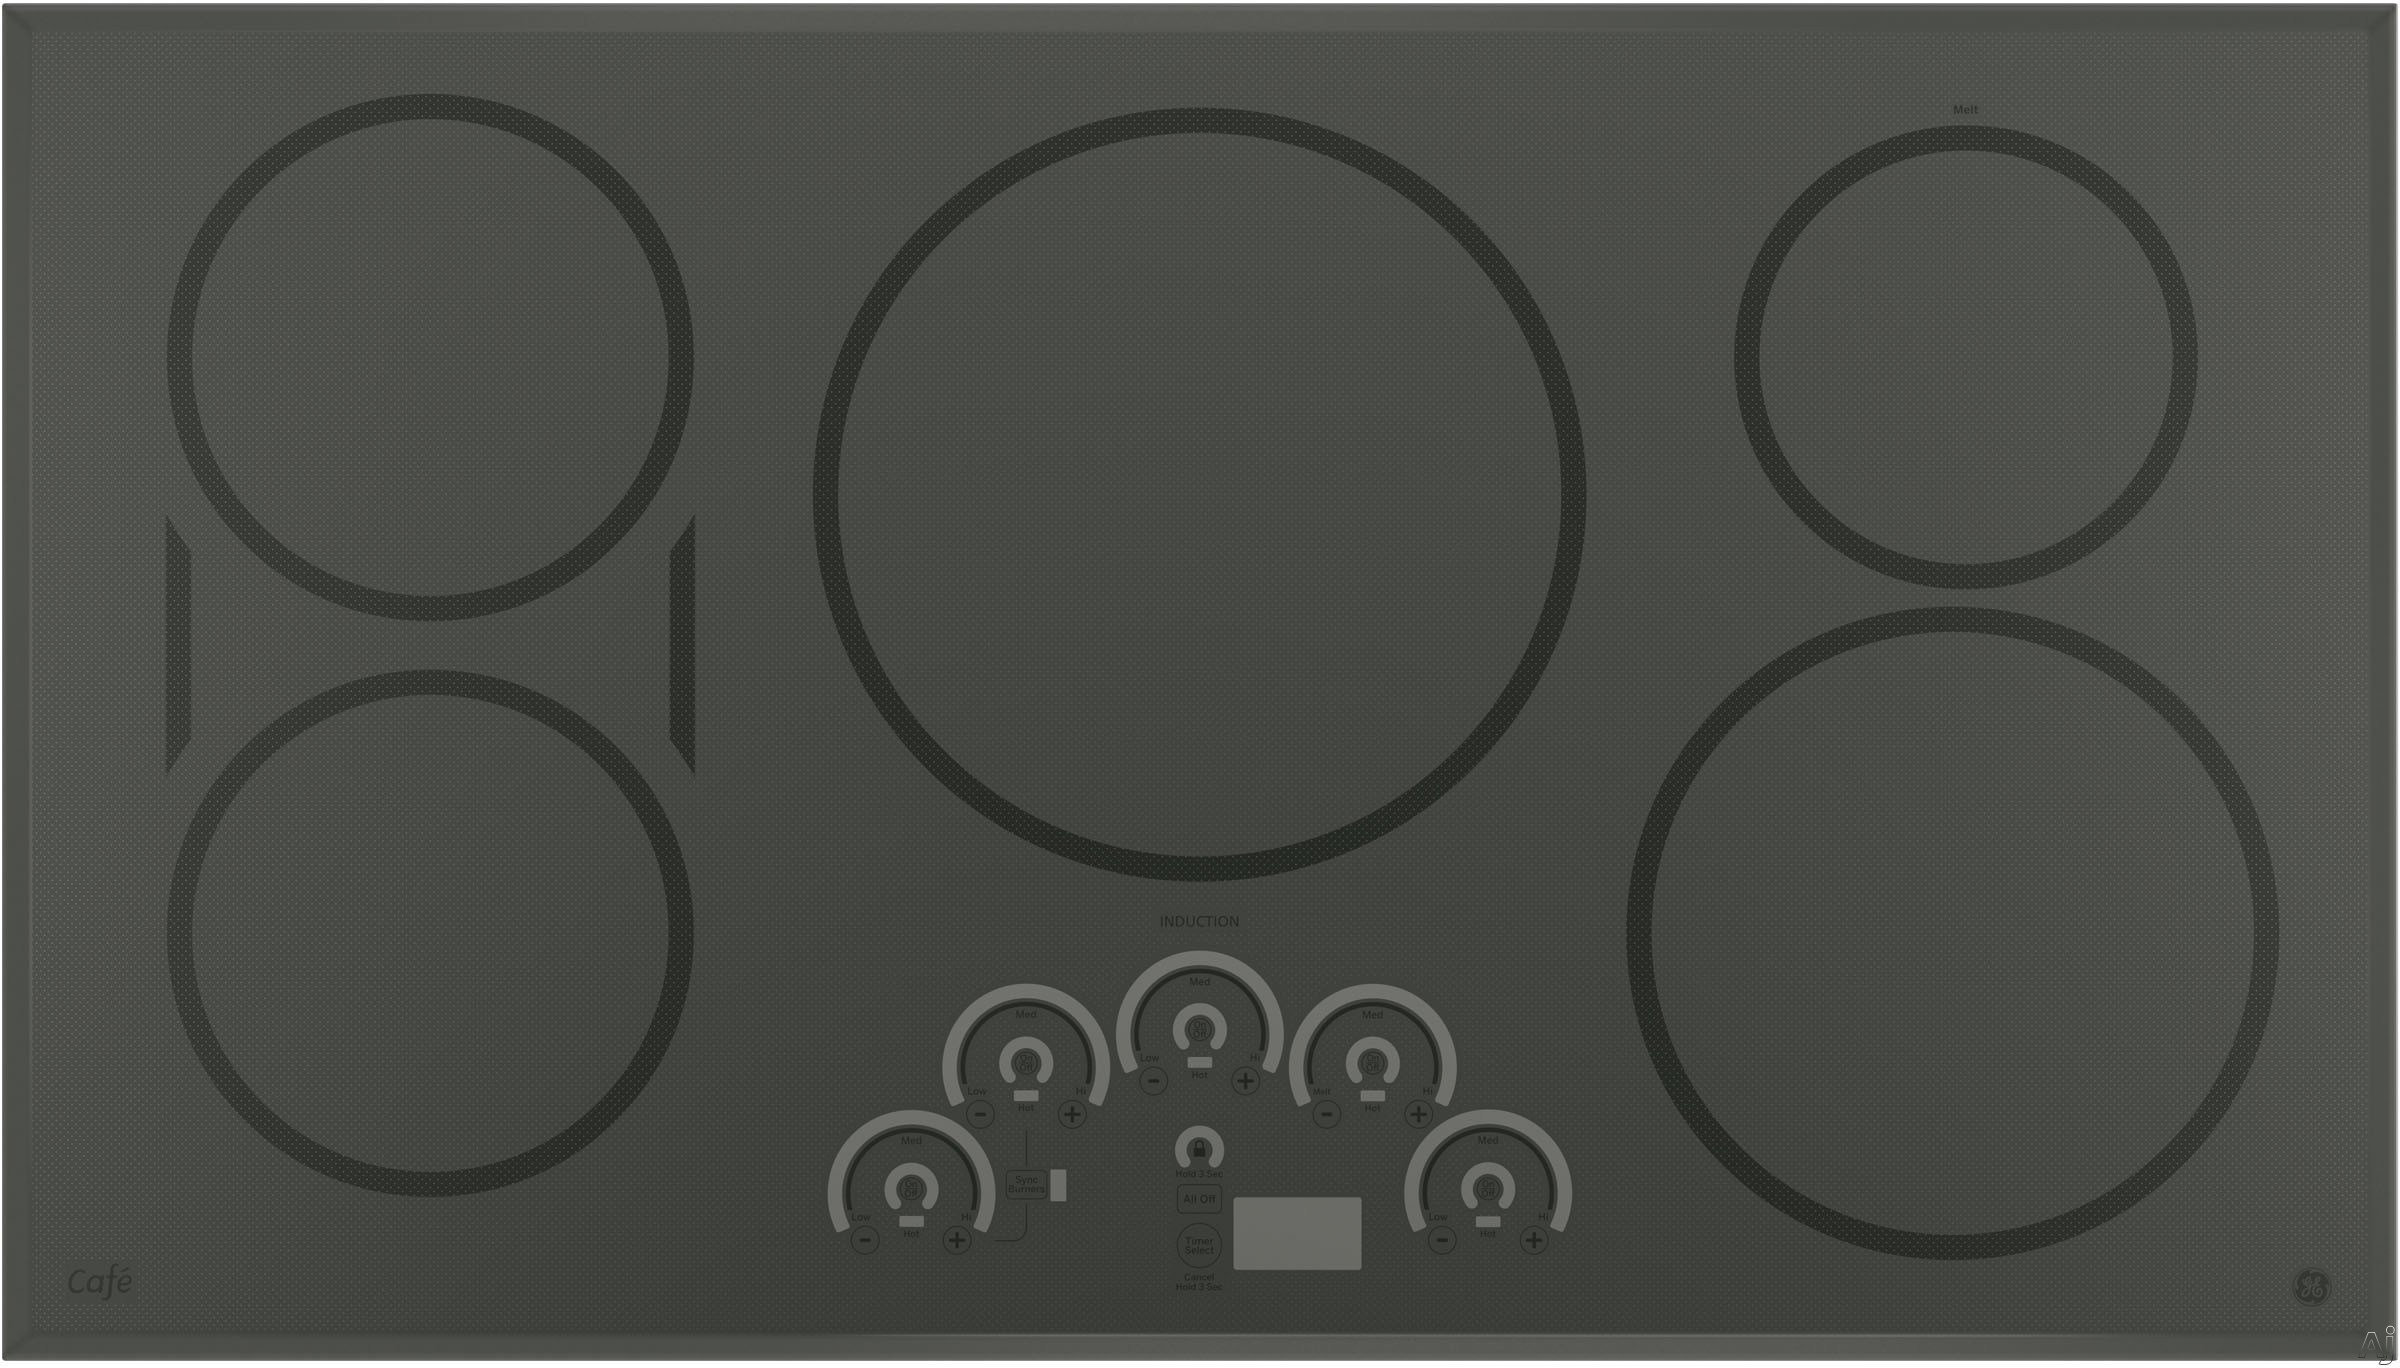 GE Cafe Series CHP9536SJSS 36 Inch Induction Cooktop with 3,700W Induction Element, Glide Touch Controls, SyncBurners, Multi-Element Timer, 5 Cooking Zones, Griddle, Control Lock, Ceramic Glass Surfac